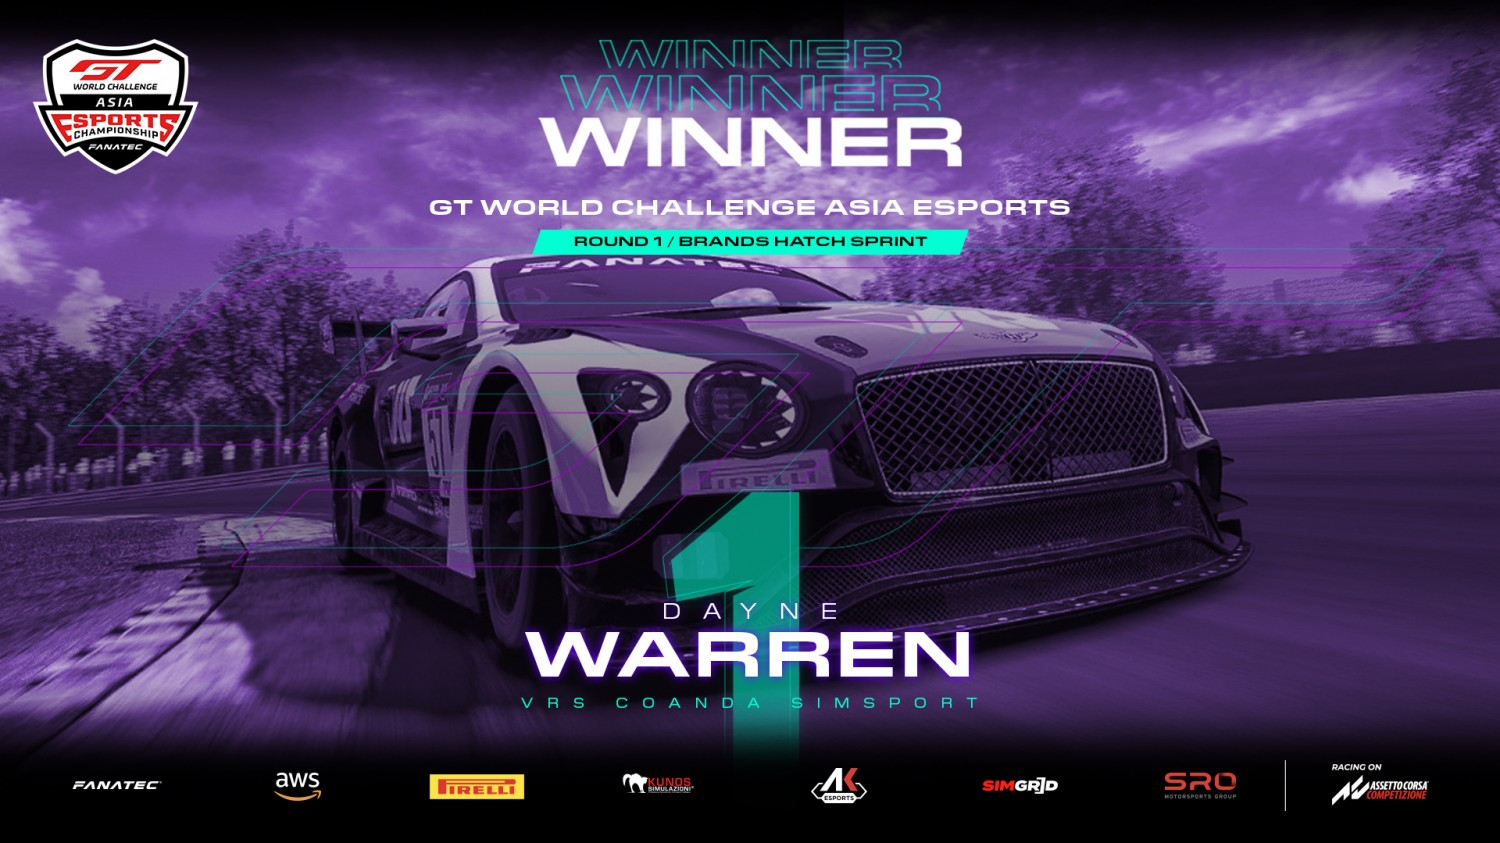 SRO E-sports - ESPORTS: Warren wipes the floor with rivals in Sprint Series season opener at Brands